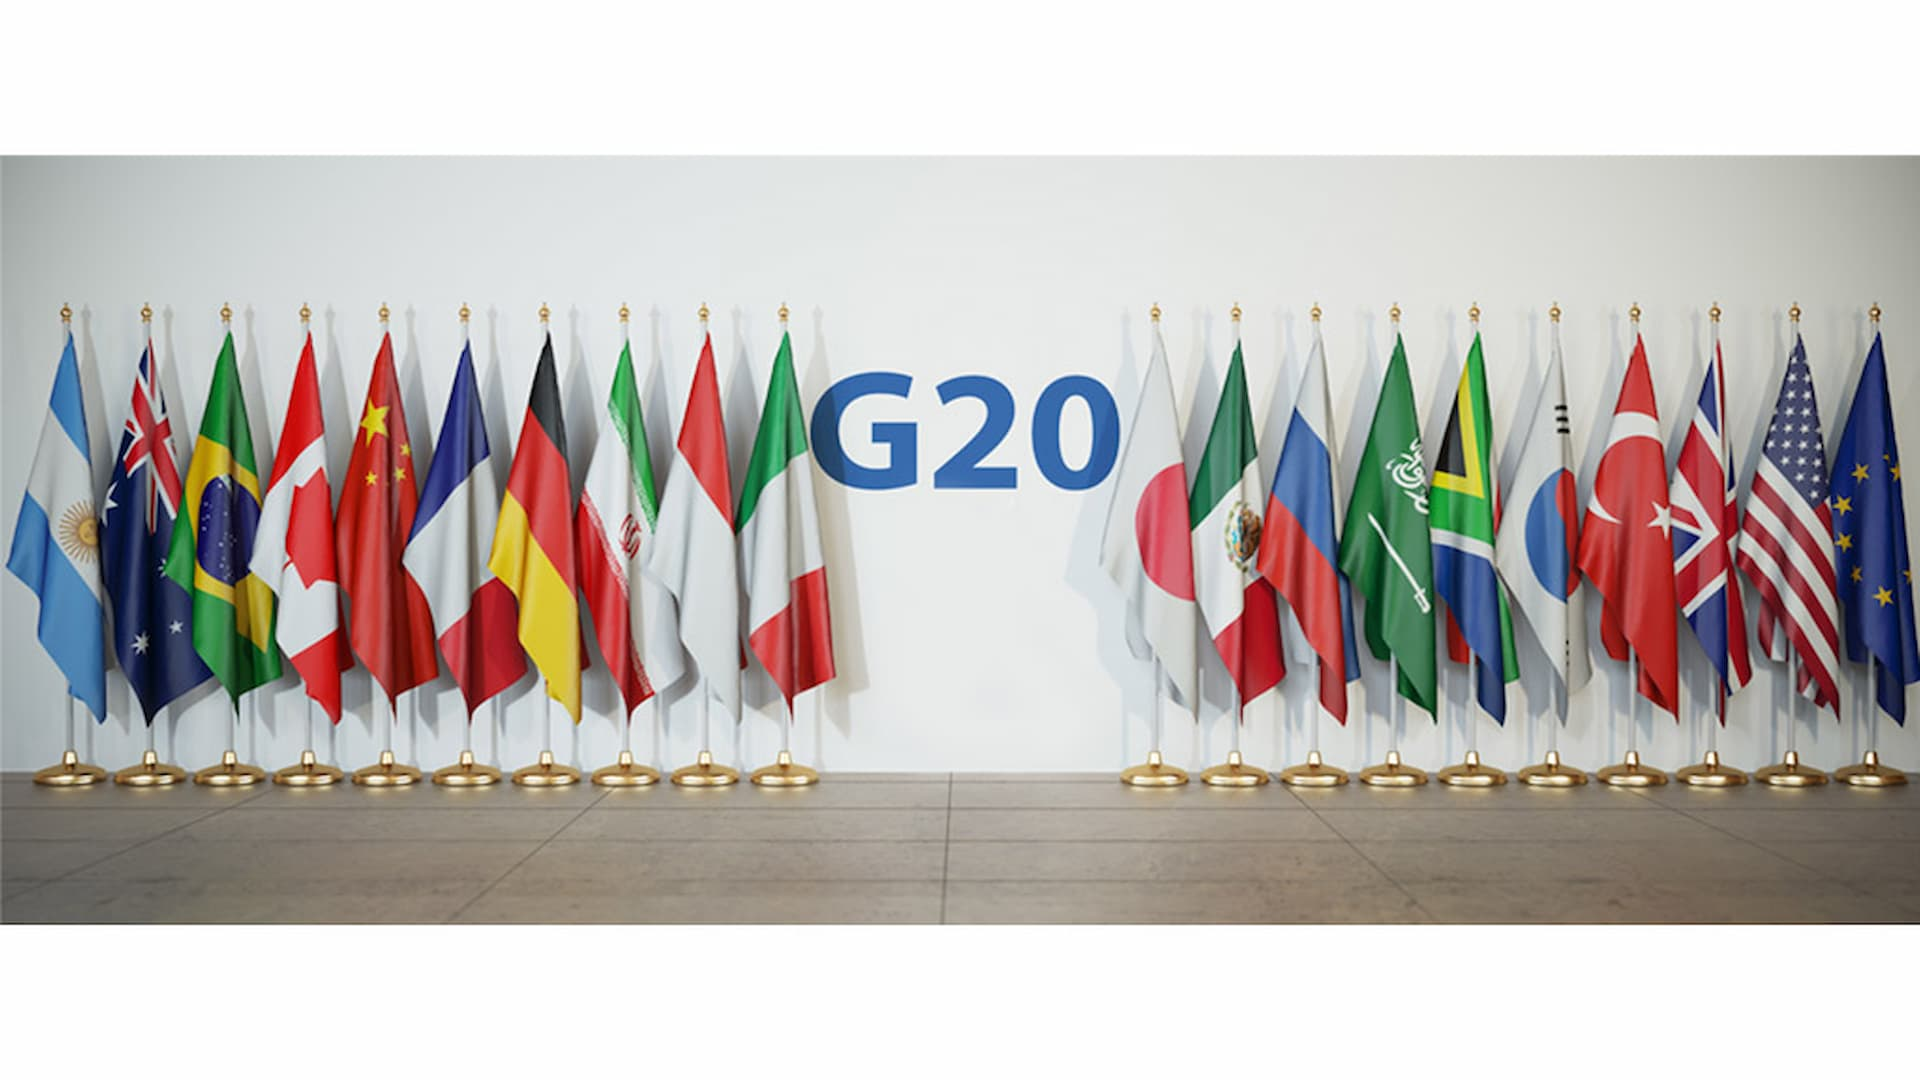 G20 SPACE ECONOMY LEADERS MEETING 2021  SPACE FOR PEOPLE, PLANET AND PROSPERITY